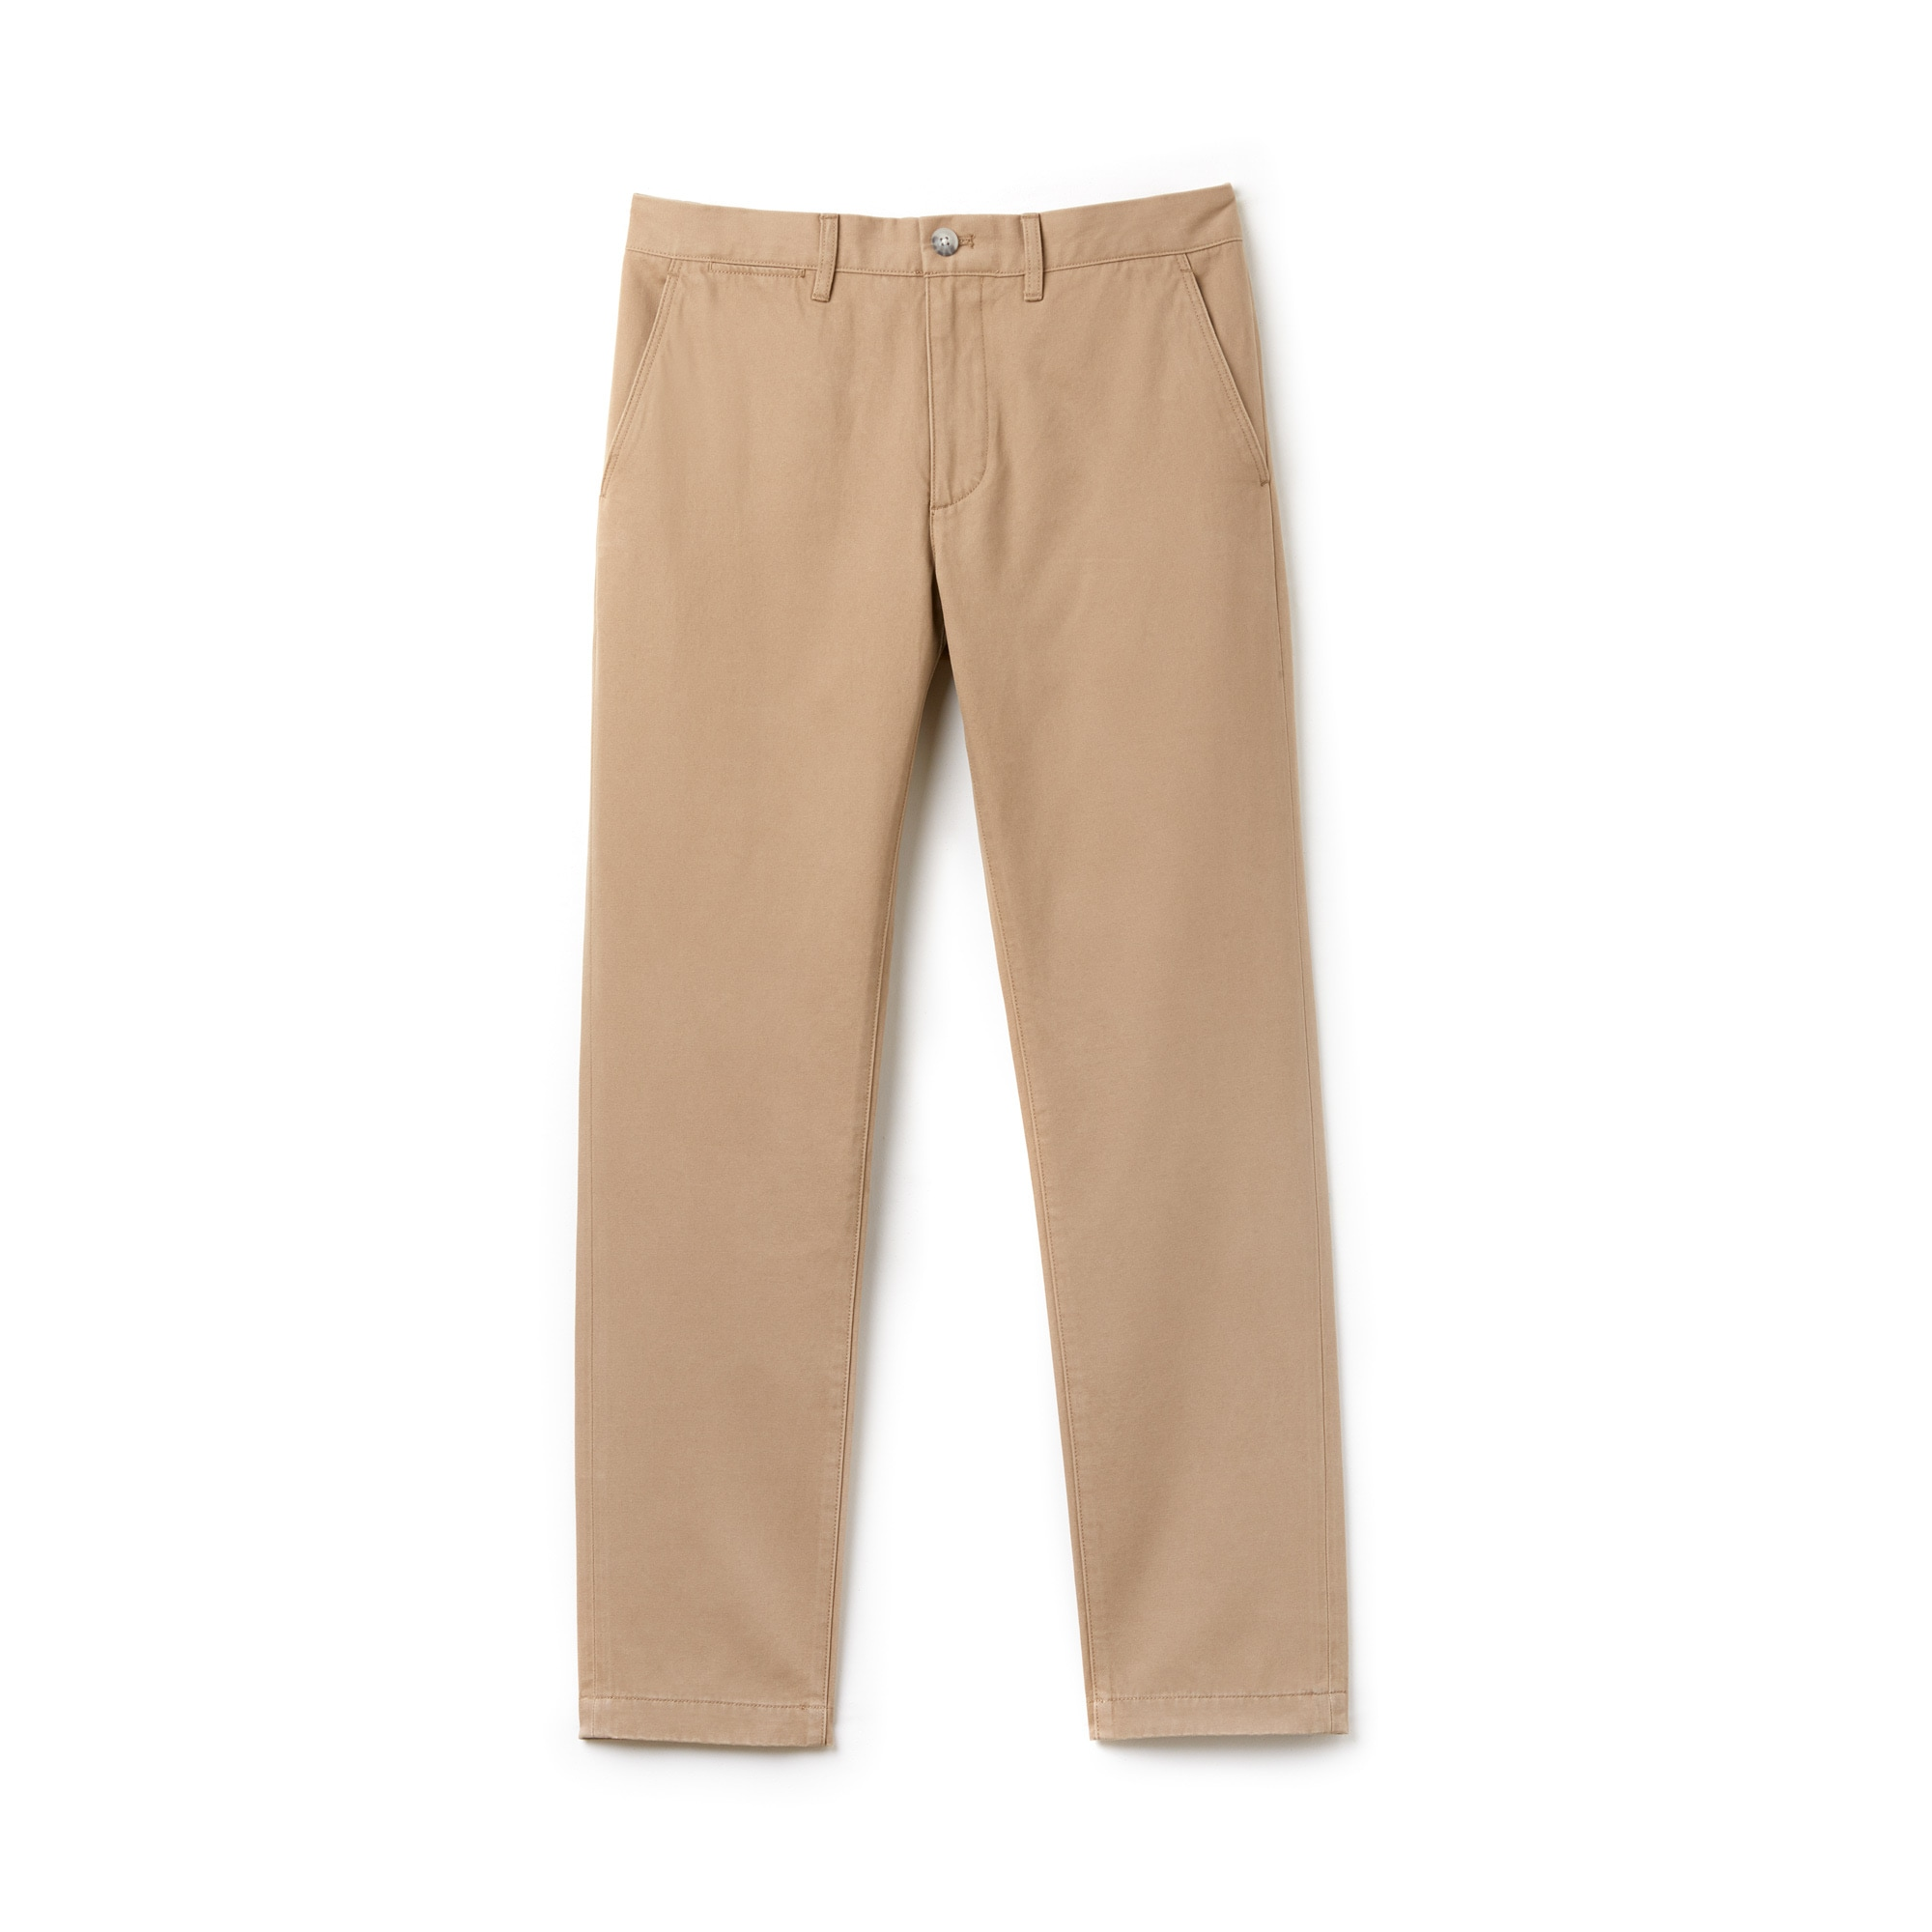 Regular Fit Herren-Chinohose aus Baumwoll-Gabardine